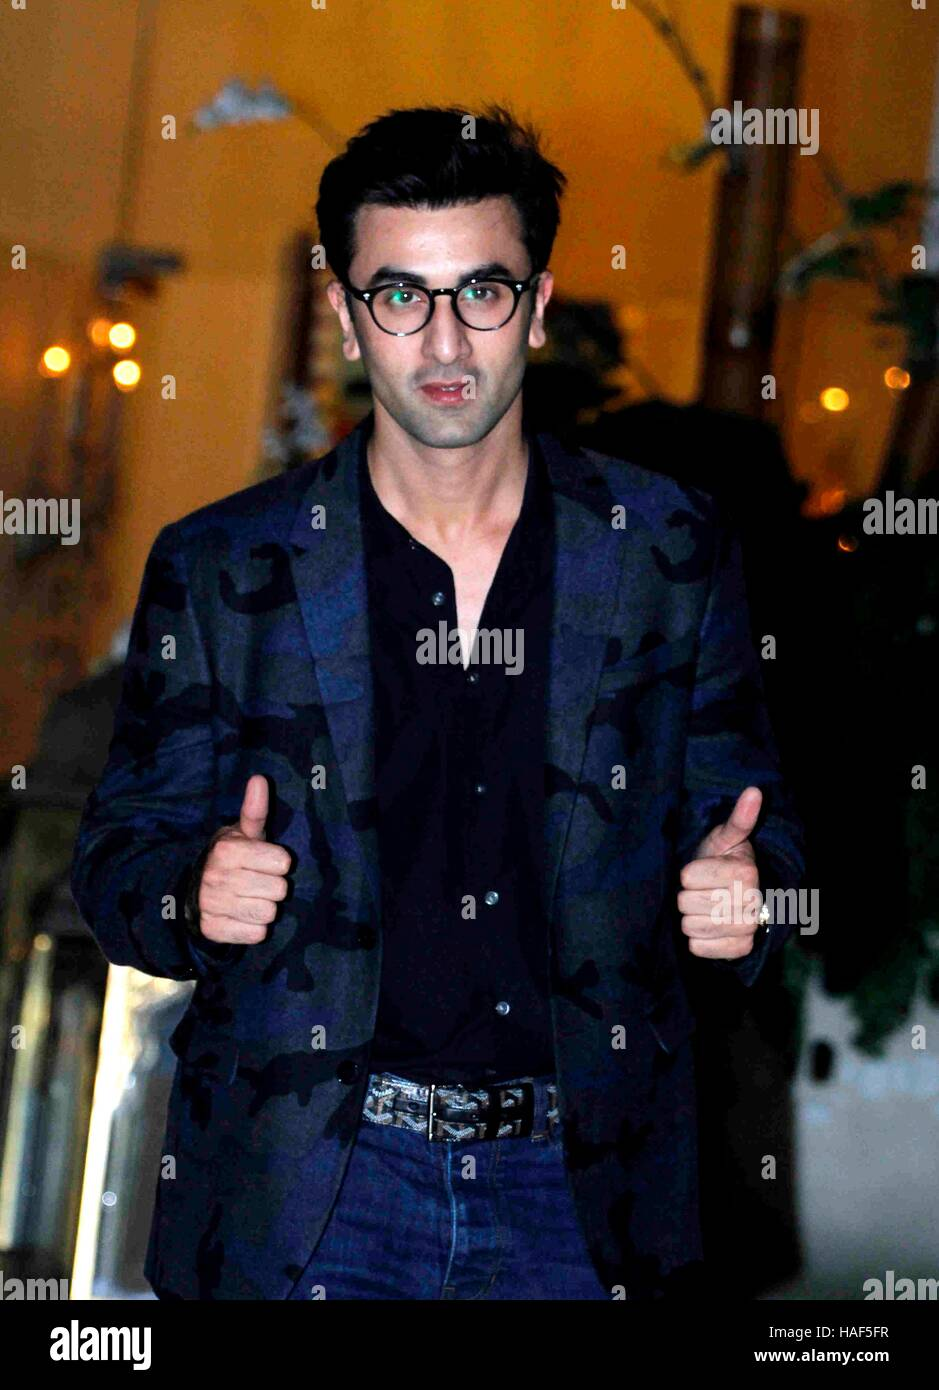 bollywood actor ranbir kapoor arrives at industrialist mukesh ambani